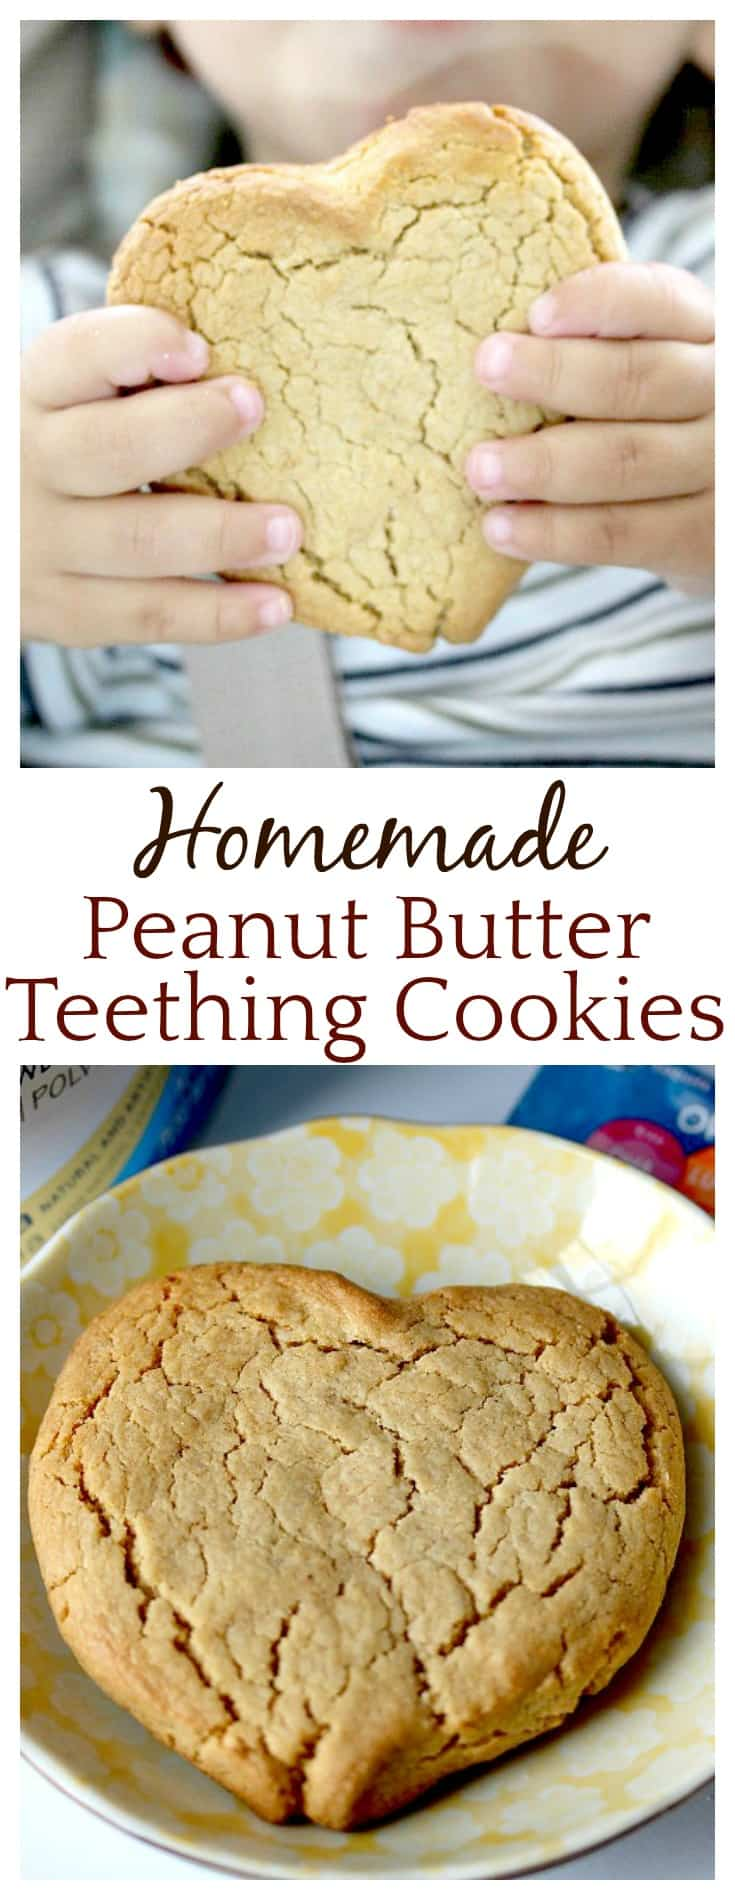 So many parents are making their own baby food now (including me!) but I never thought of making my own teething cookies! Can't wait to try this Homemade Peanut Butter Teething Cookie recipe! A hard, but delicious cookie perfect for when your little one is teething!